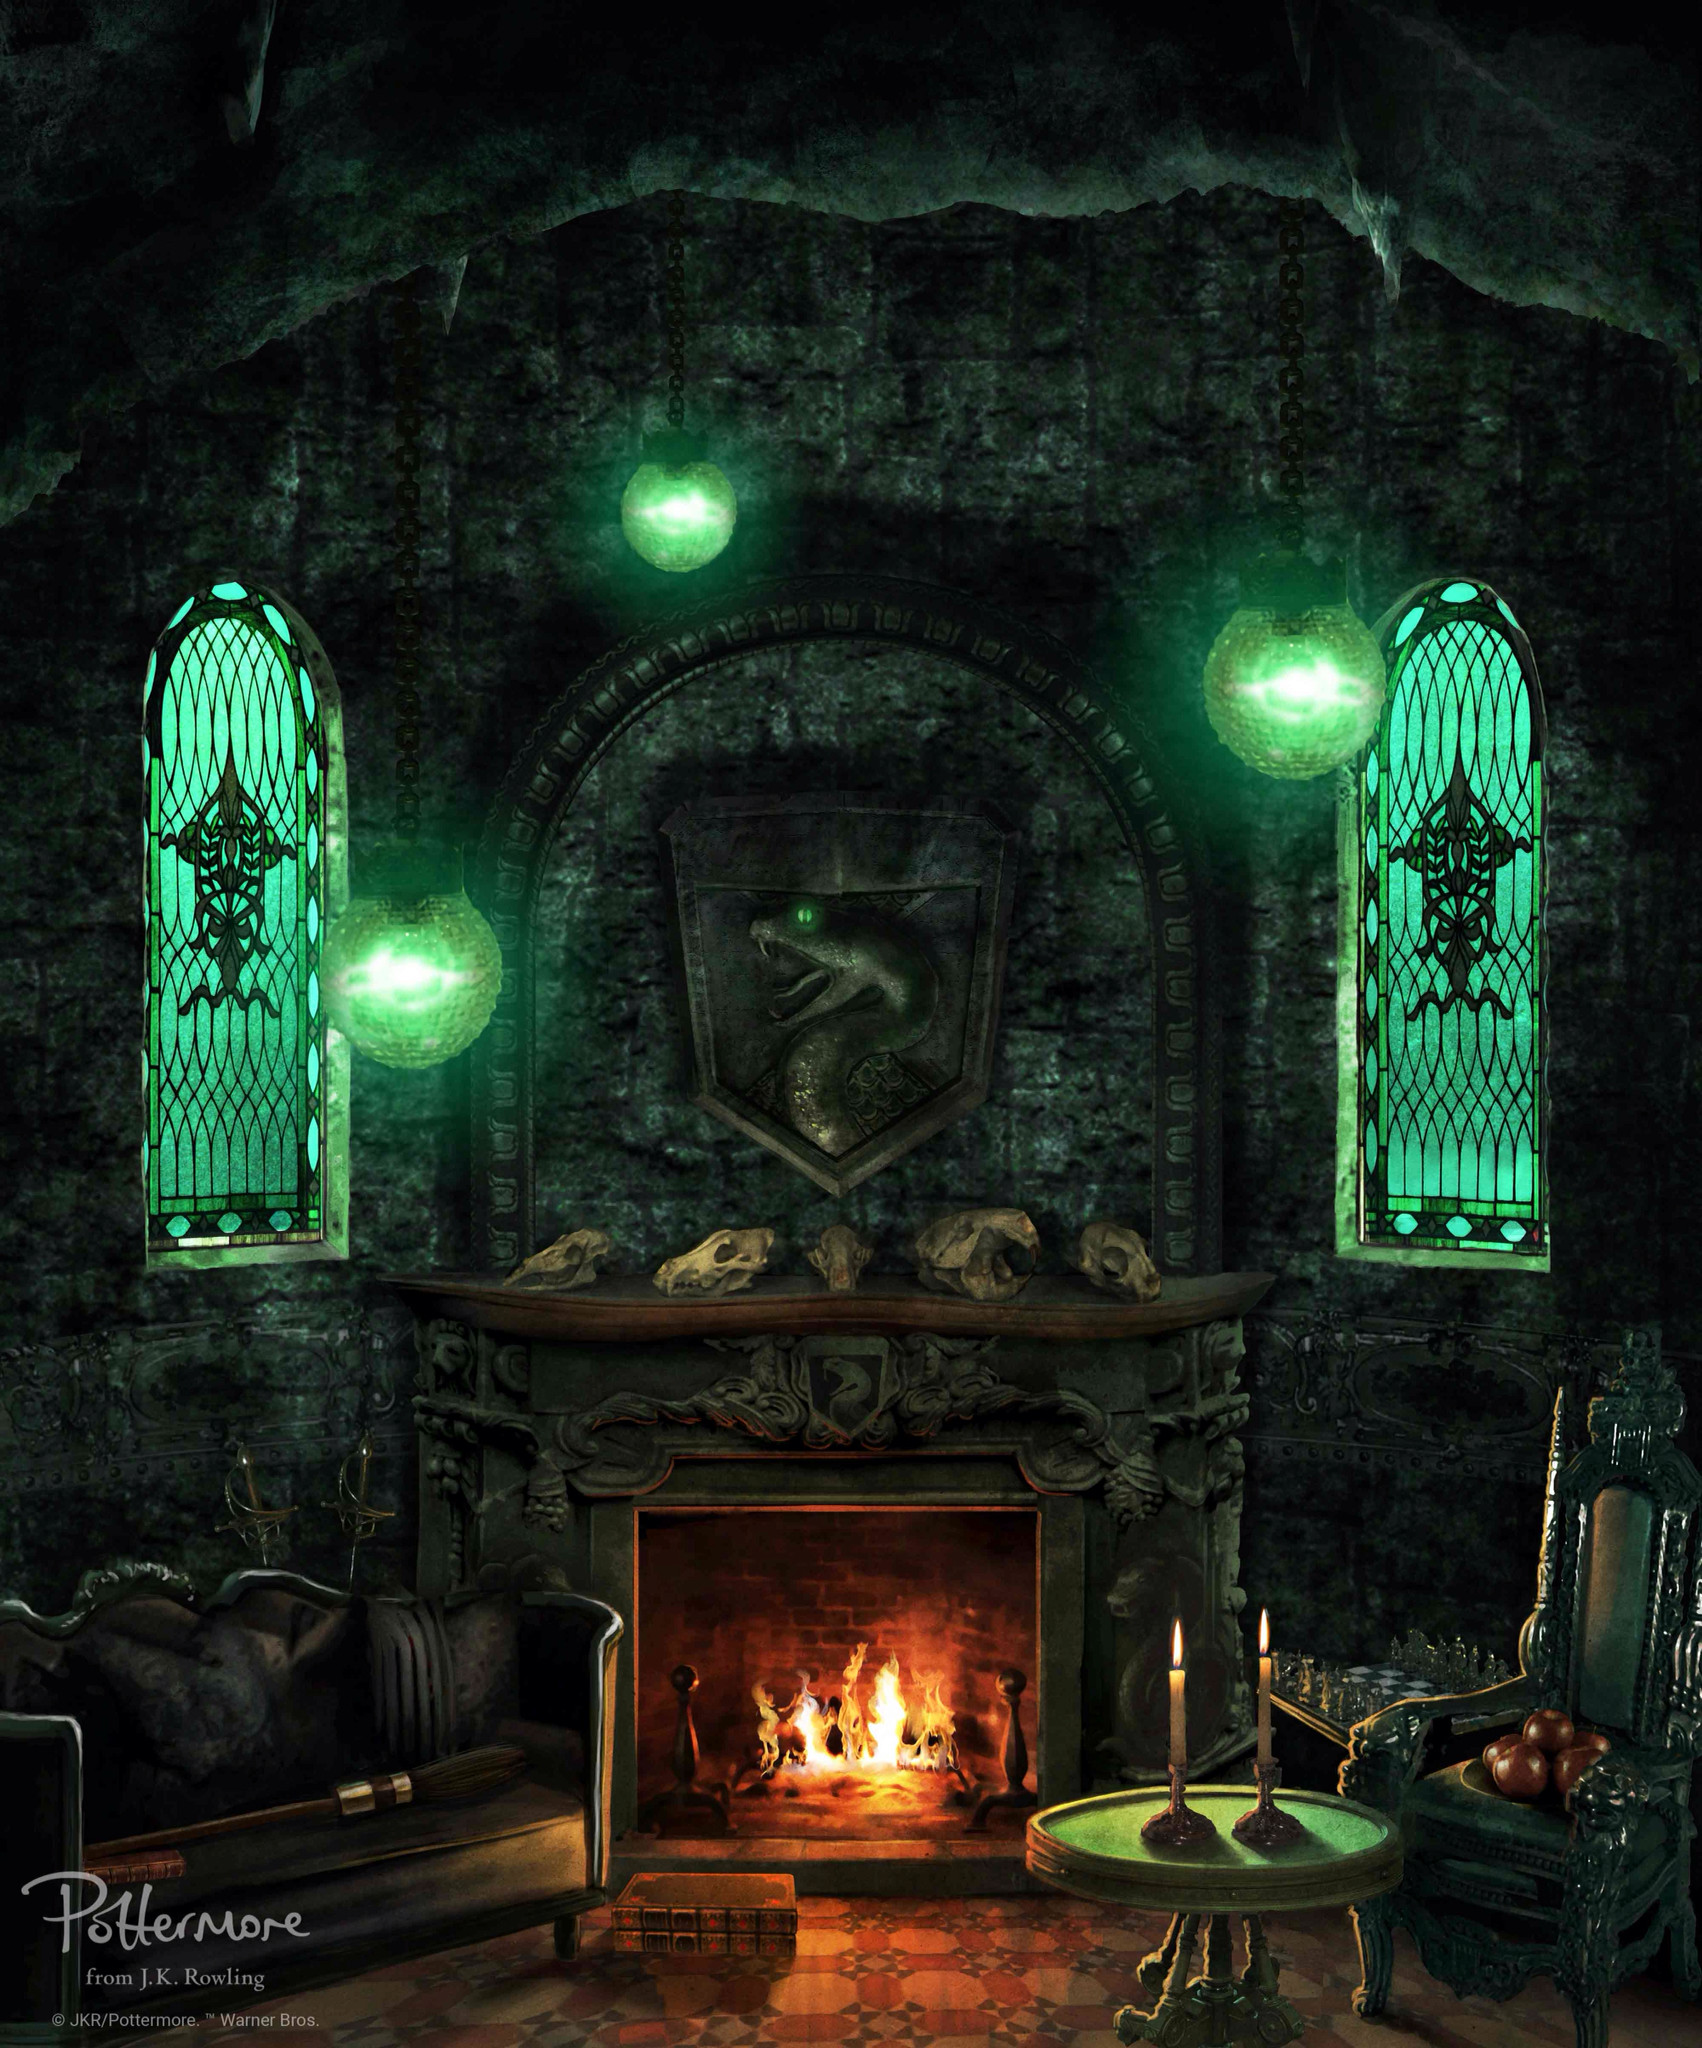 Official slytherin house common room wallpaper